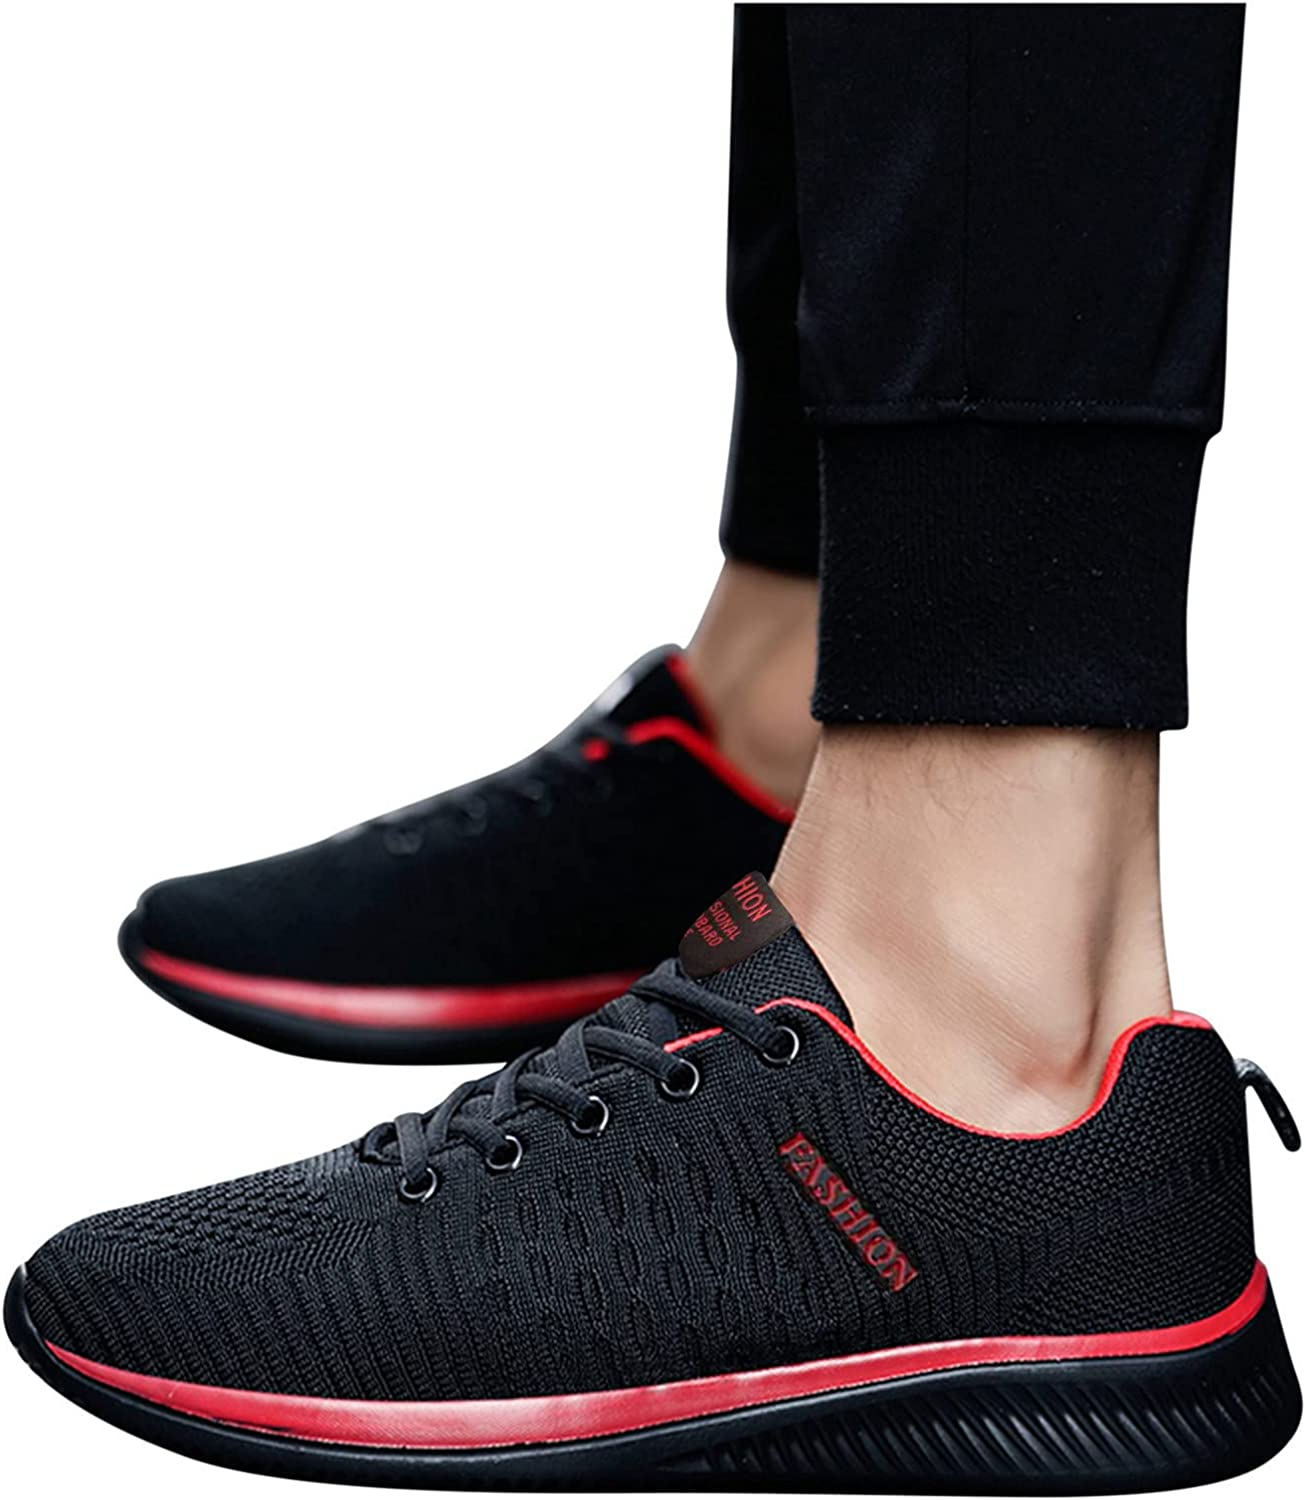 Hbeylia Outdoor Sports Running Walking Shoes For Women Men Fashion Lightweight Lace Up Slip On Flats Sneakers Breathable Mesh Tennis Hiking Athletic Shoes For Boys And Girls Workout Fitness